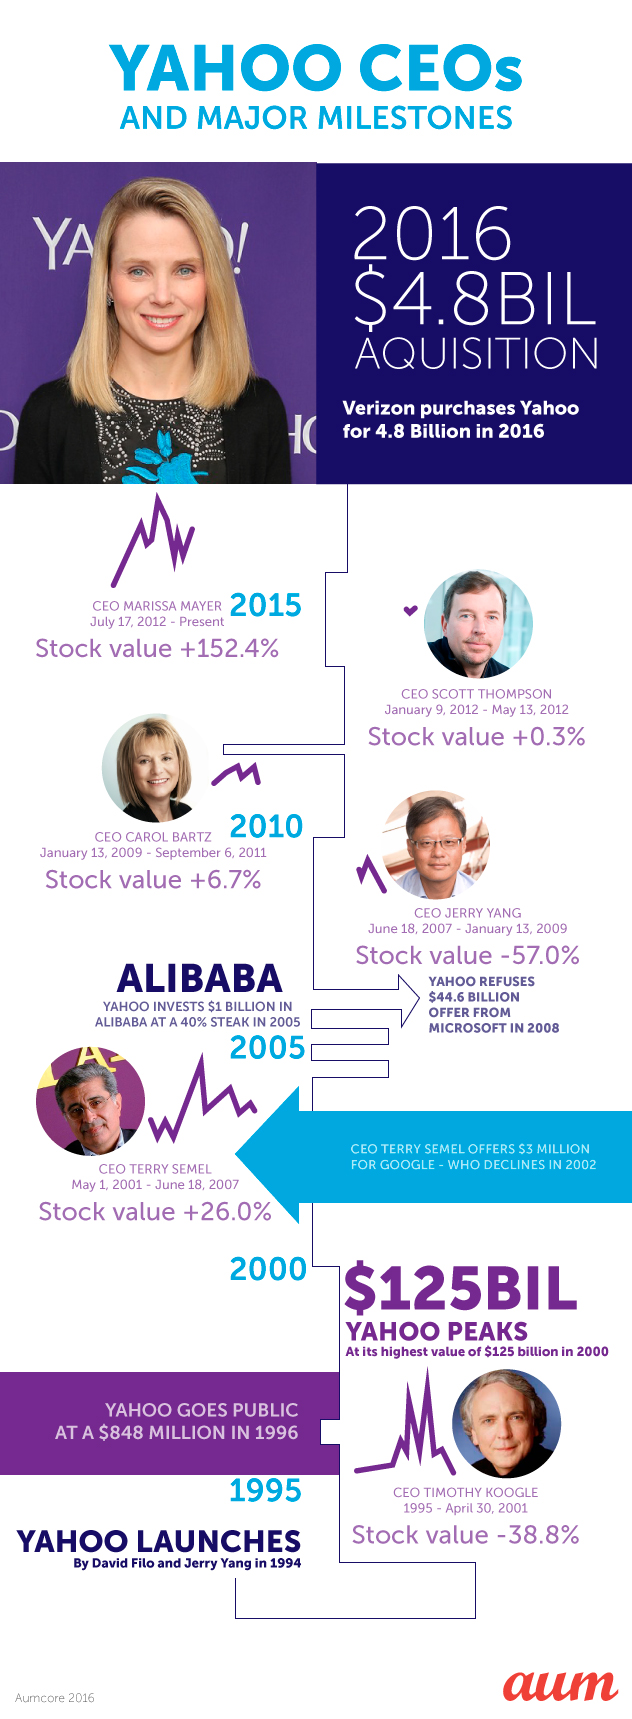 Yahoo's success and failures